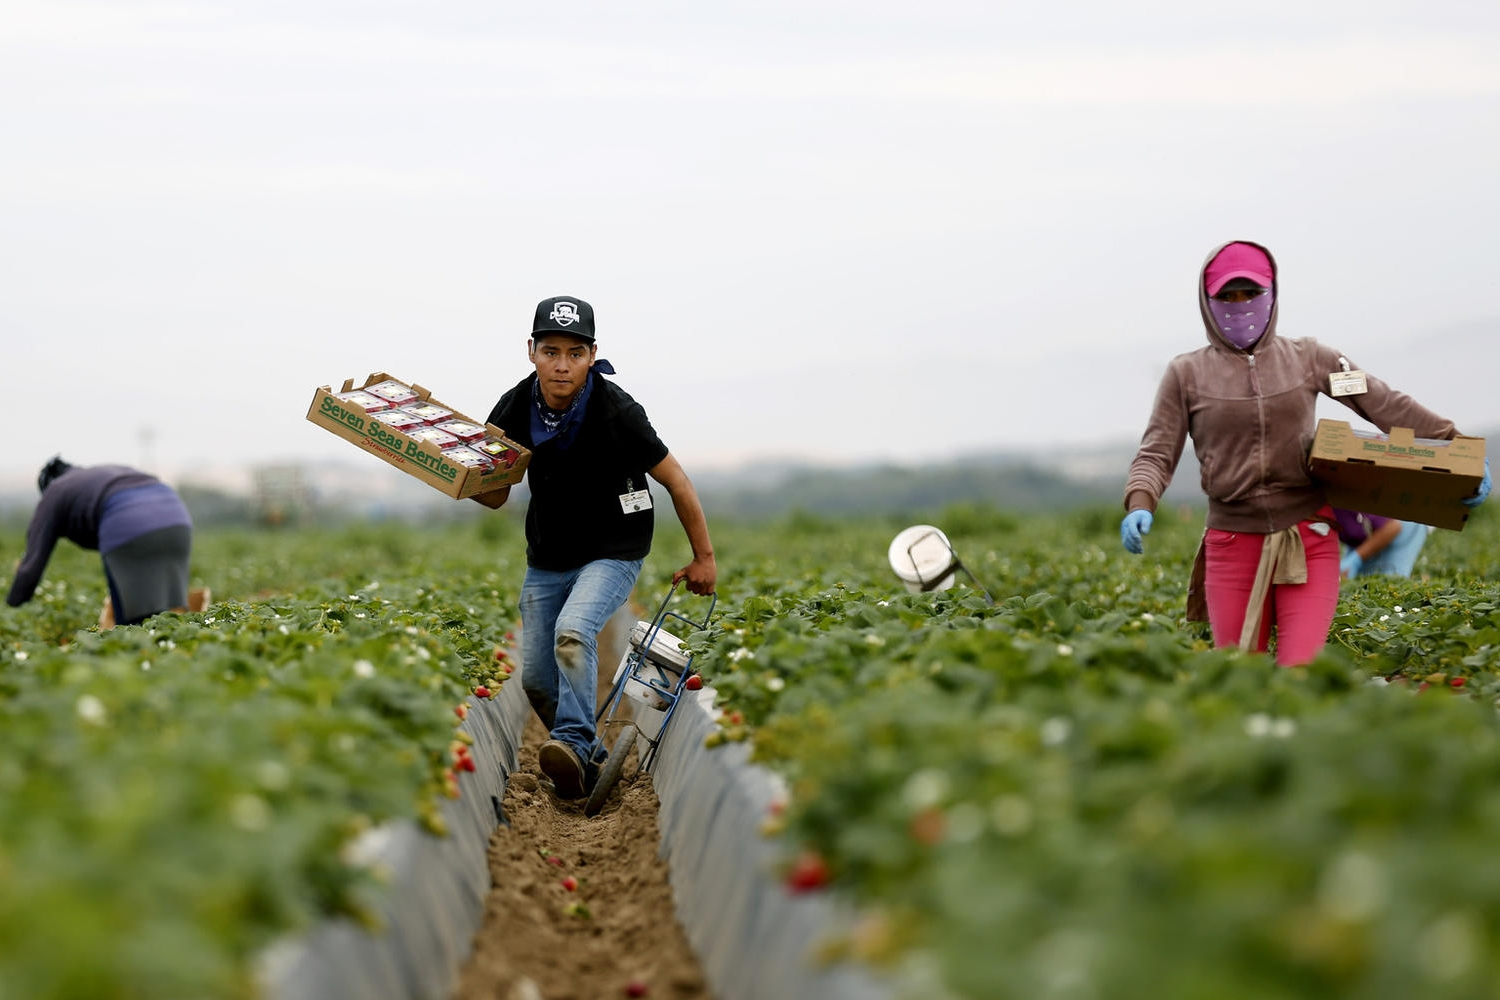 Desired for their labor, rejected as neighbors. Farmworkers in California face hostile communities - Los Angeles Times | June 2, 2017